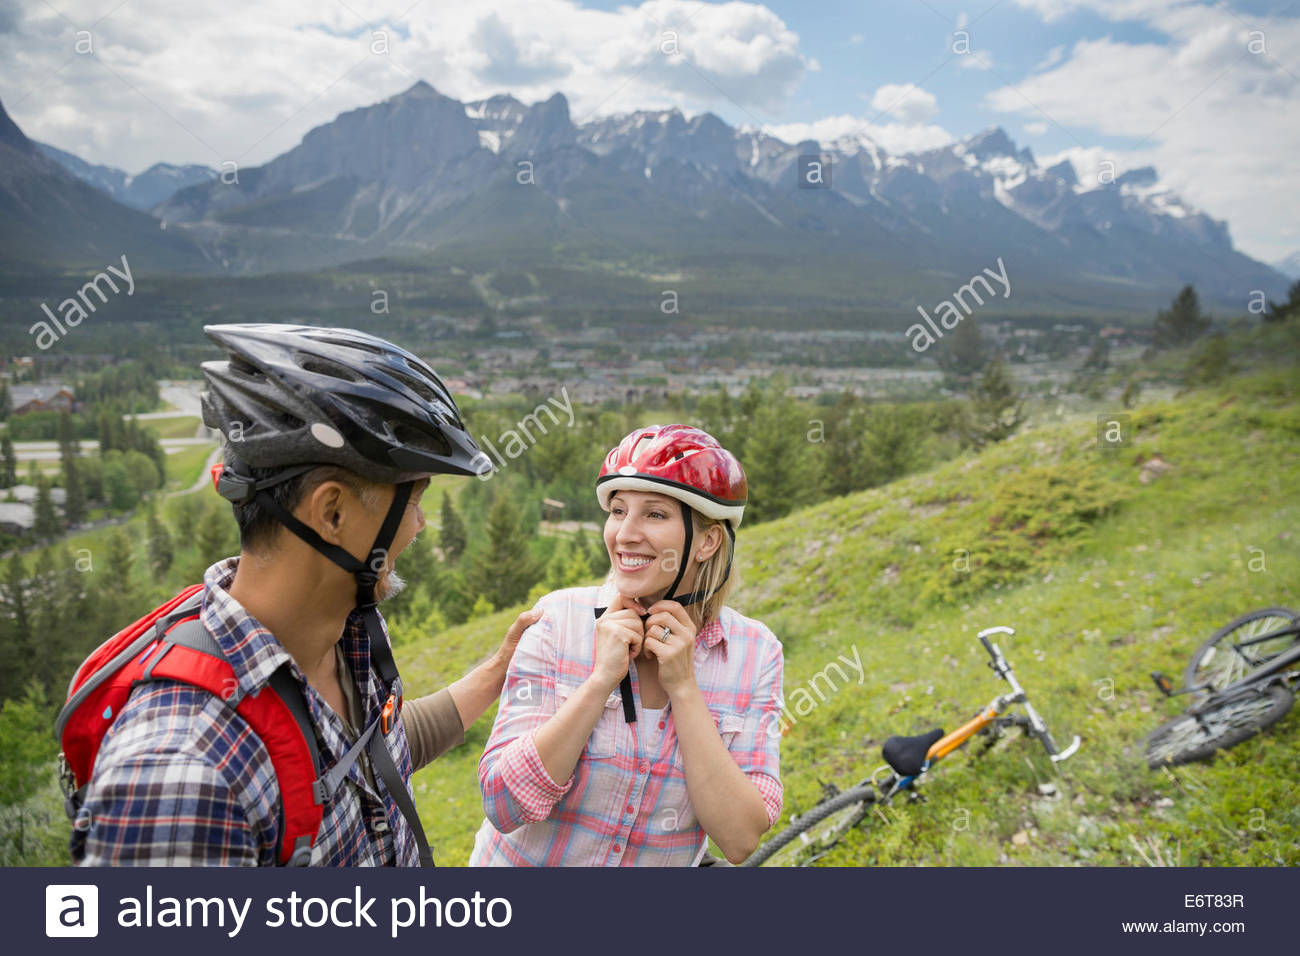 Couple with mountain bikes on hillside - Stock Image